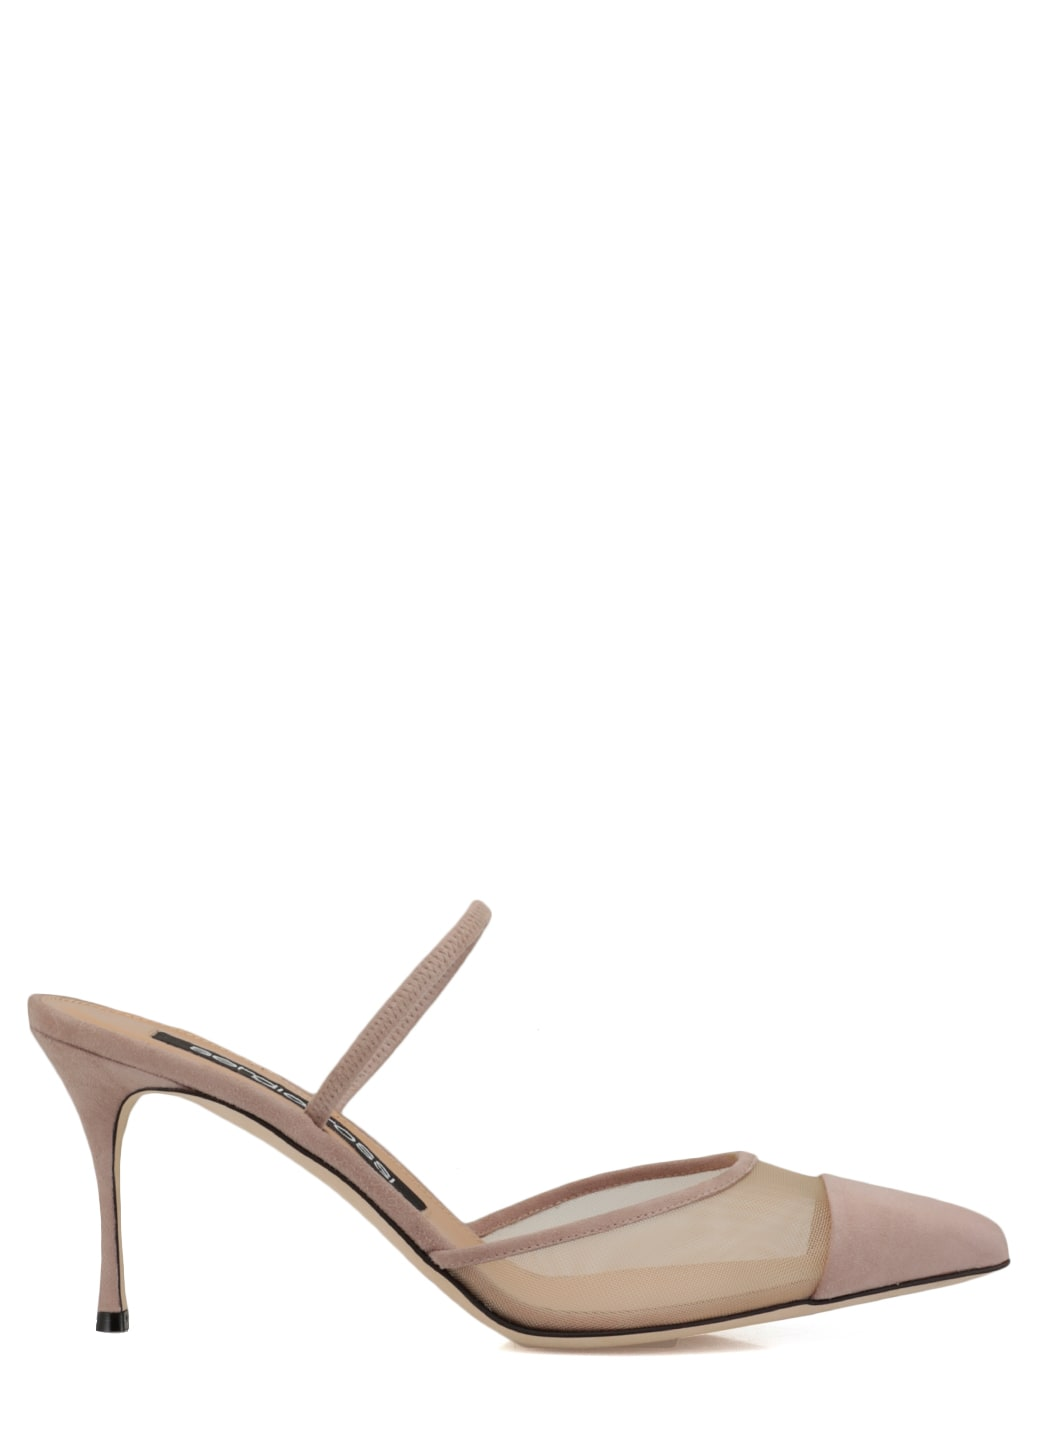 Buy Sergio Rossi Sabot Godiva 075 online, shop Sergio Rossi shoes with free shipping